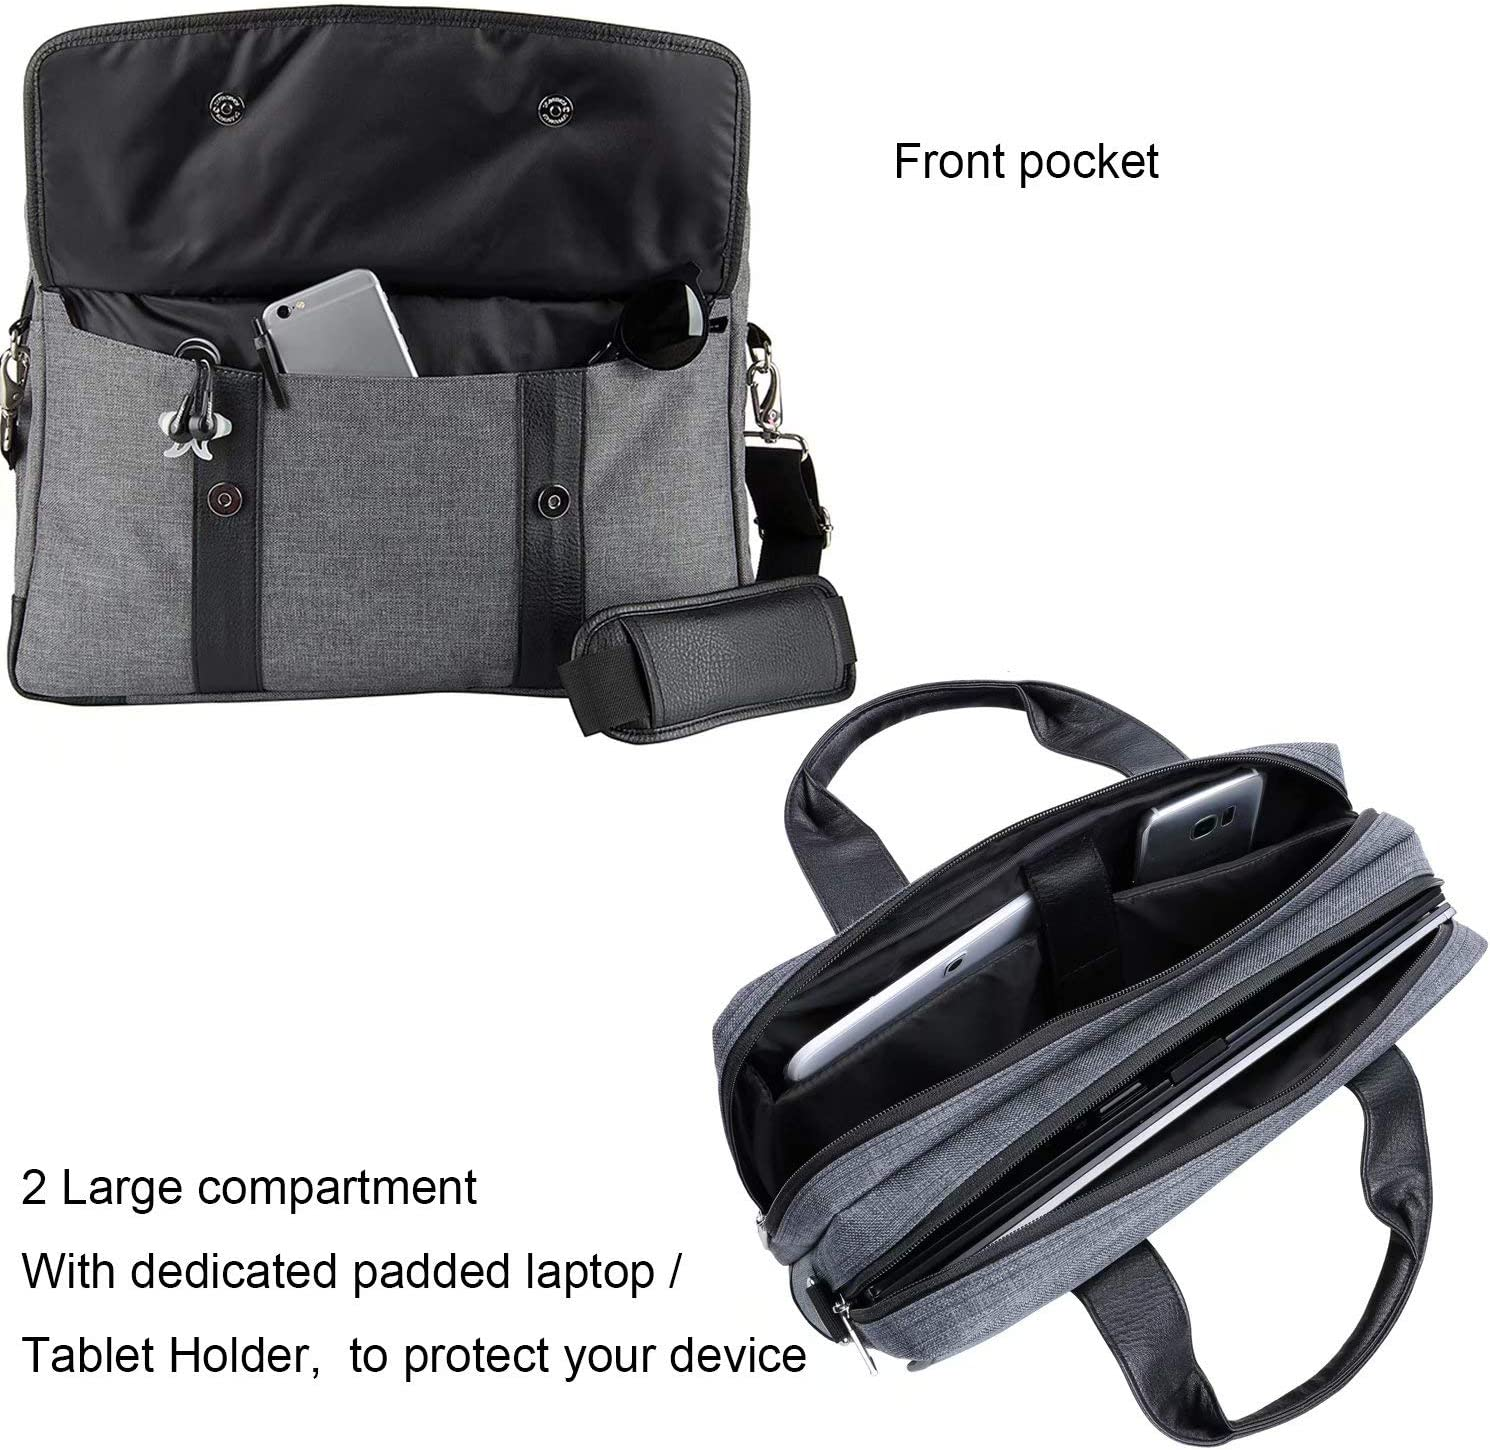 15.6 in Laptop Bag for Dell Inspiron 15 3505 3583 3593 3595 5502 5505 5591 5593 7501 7506 7590 7591